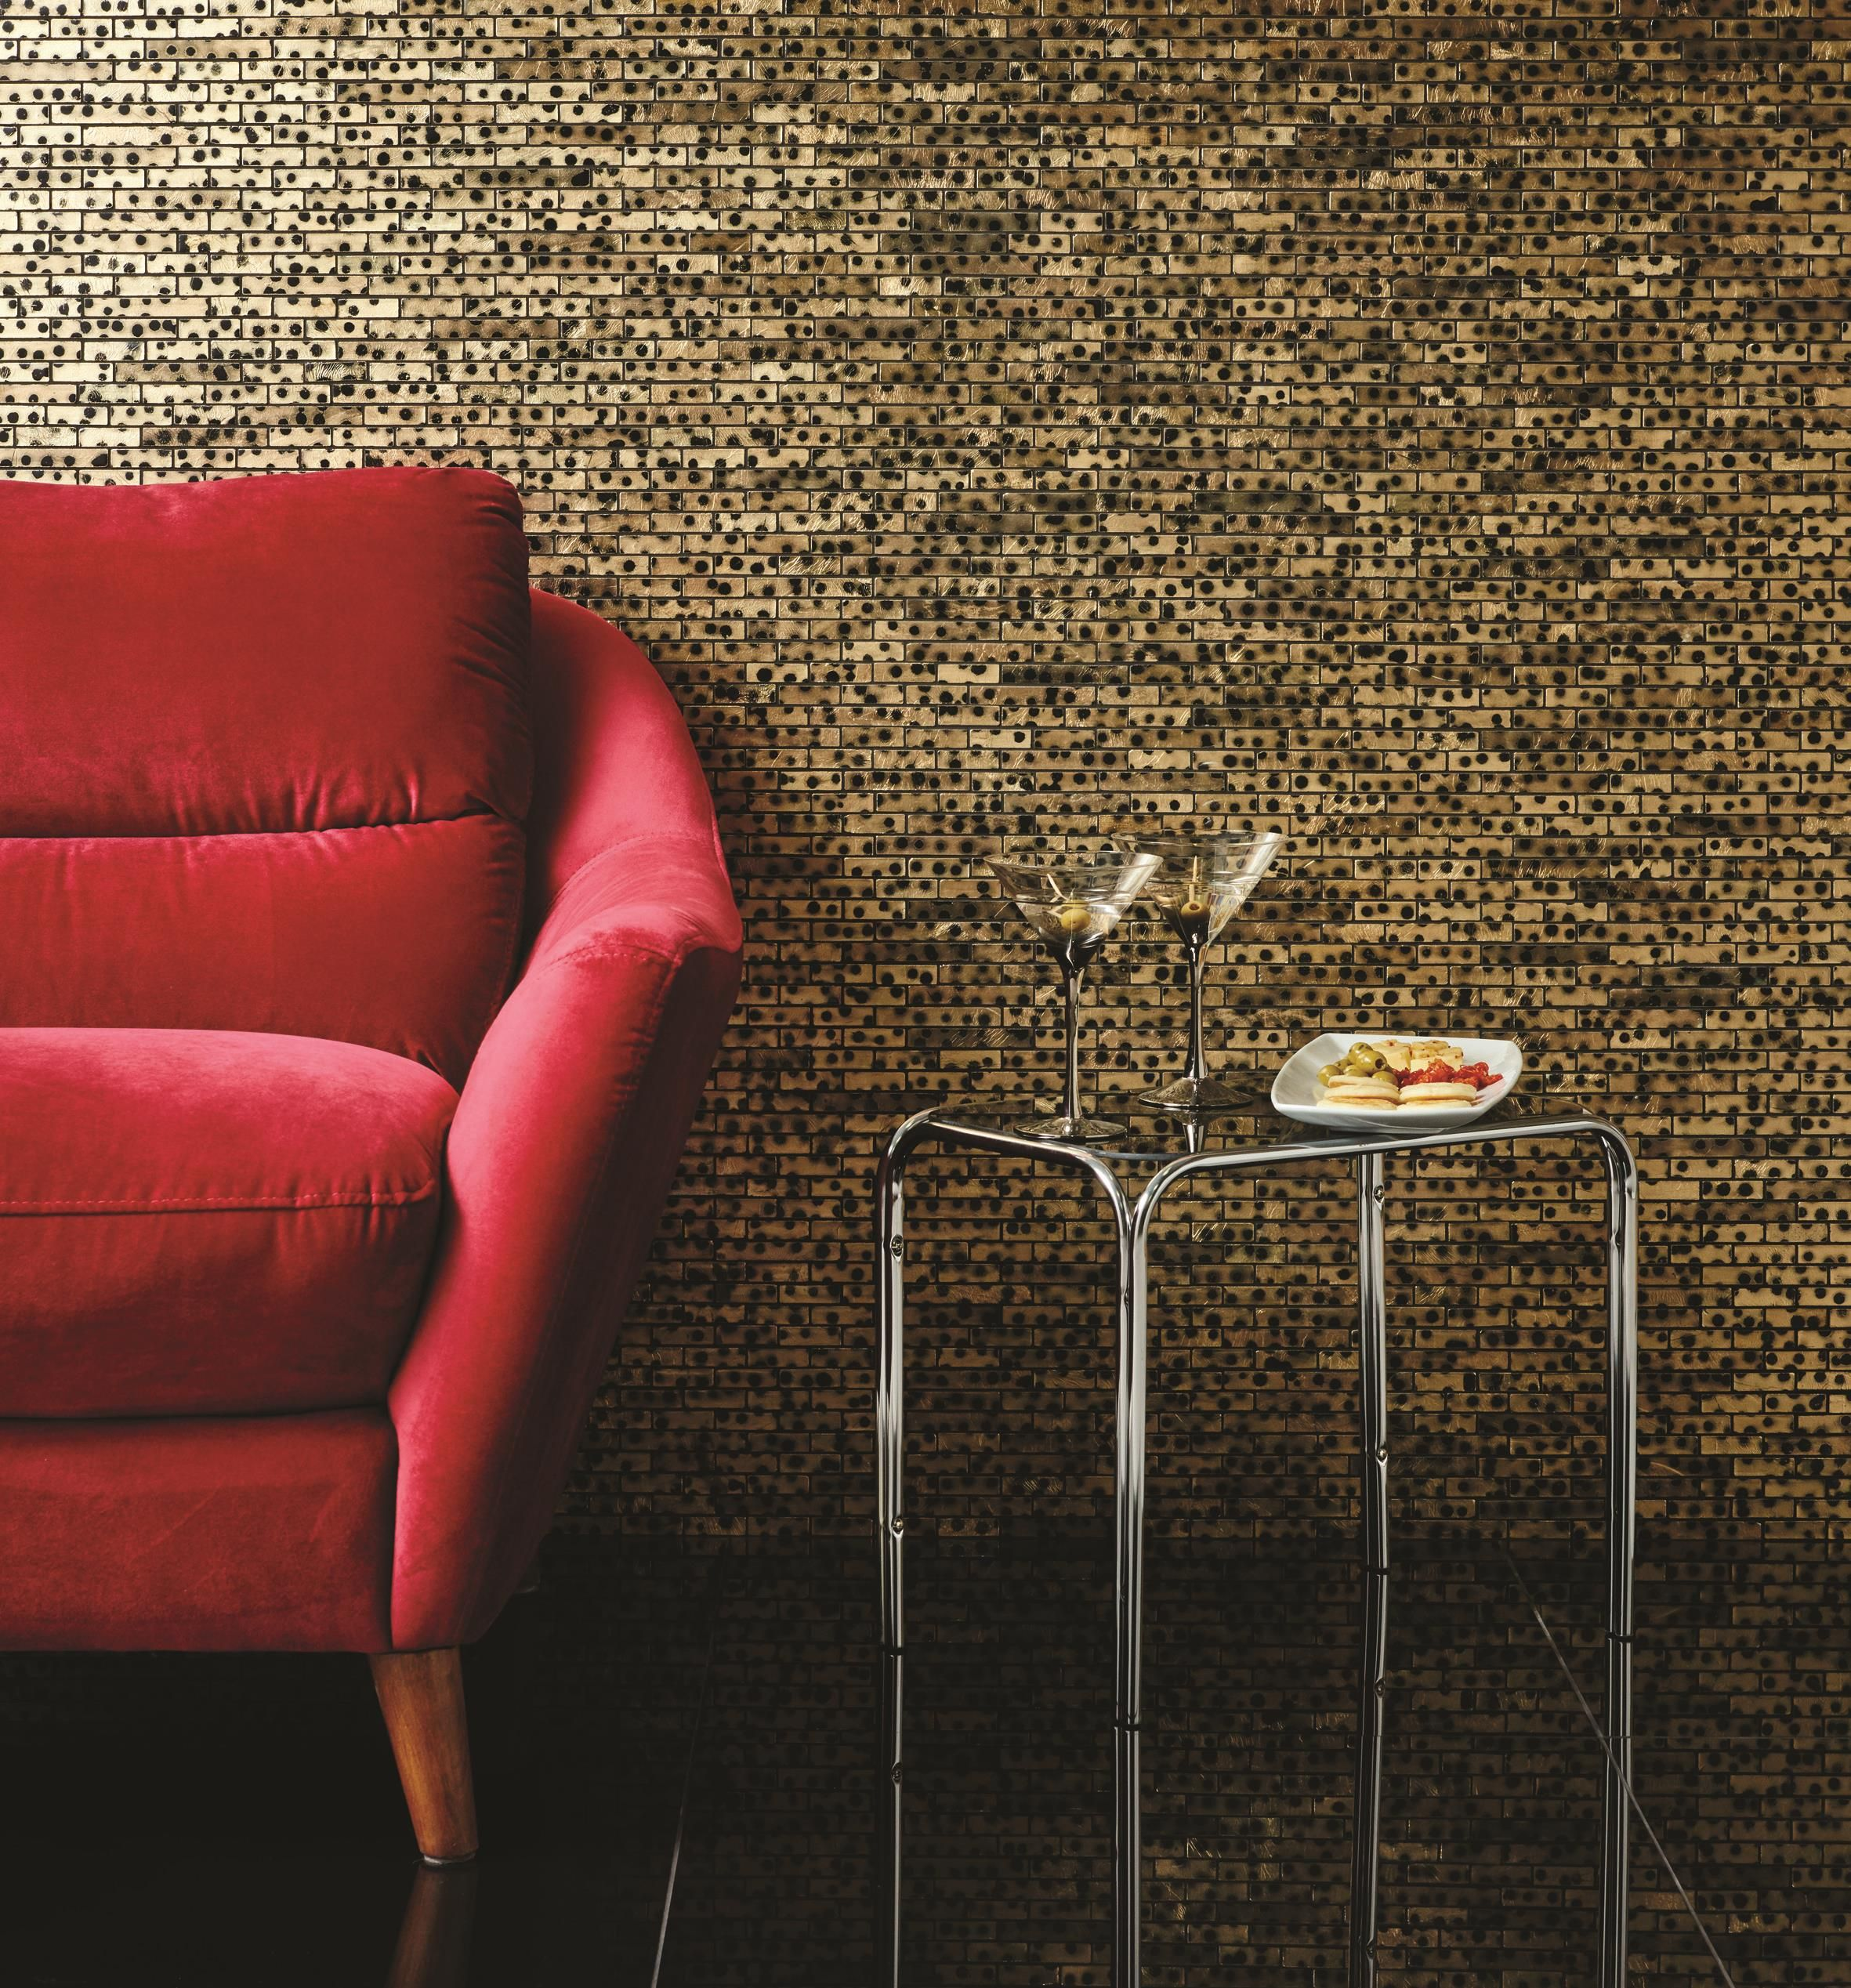 Cheyenne leopard print glazed stone mosaics are not for the faint hearted! Available in a chic brickbond format, these tiles are perfect for creating a statement look around the home. originalstyle.com